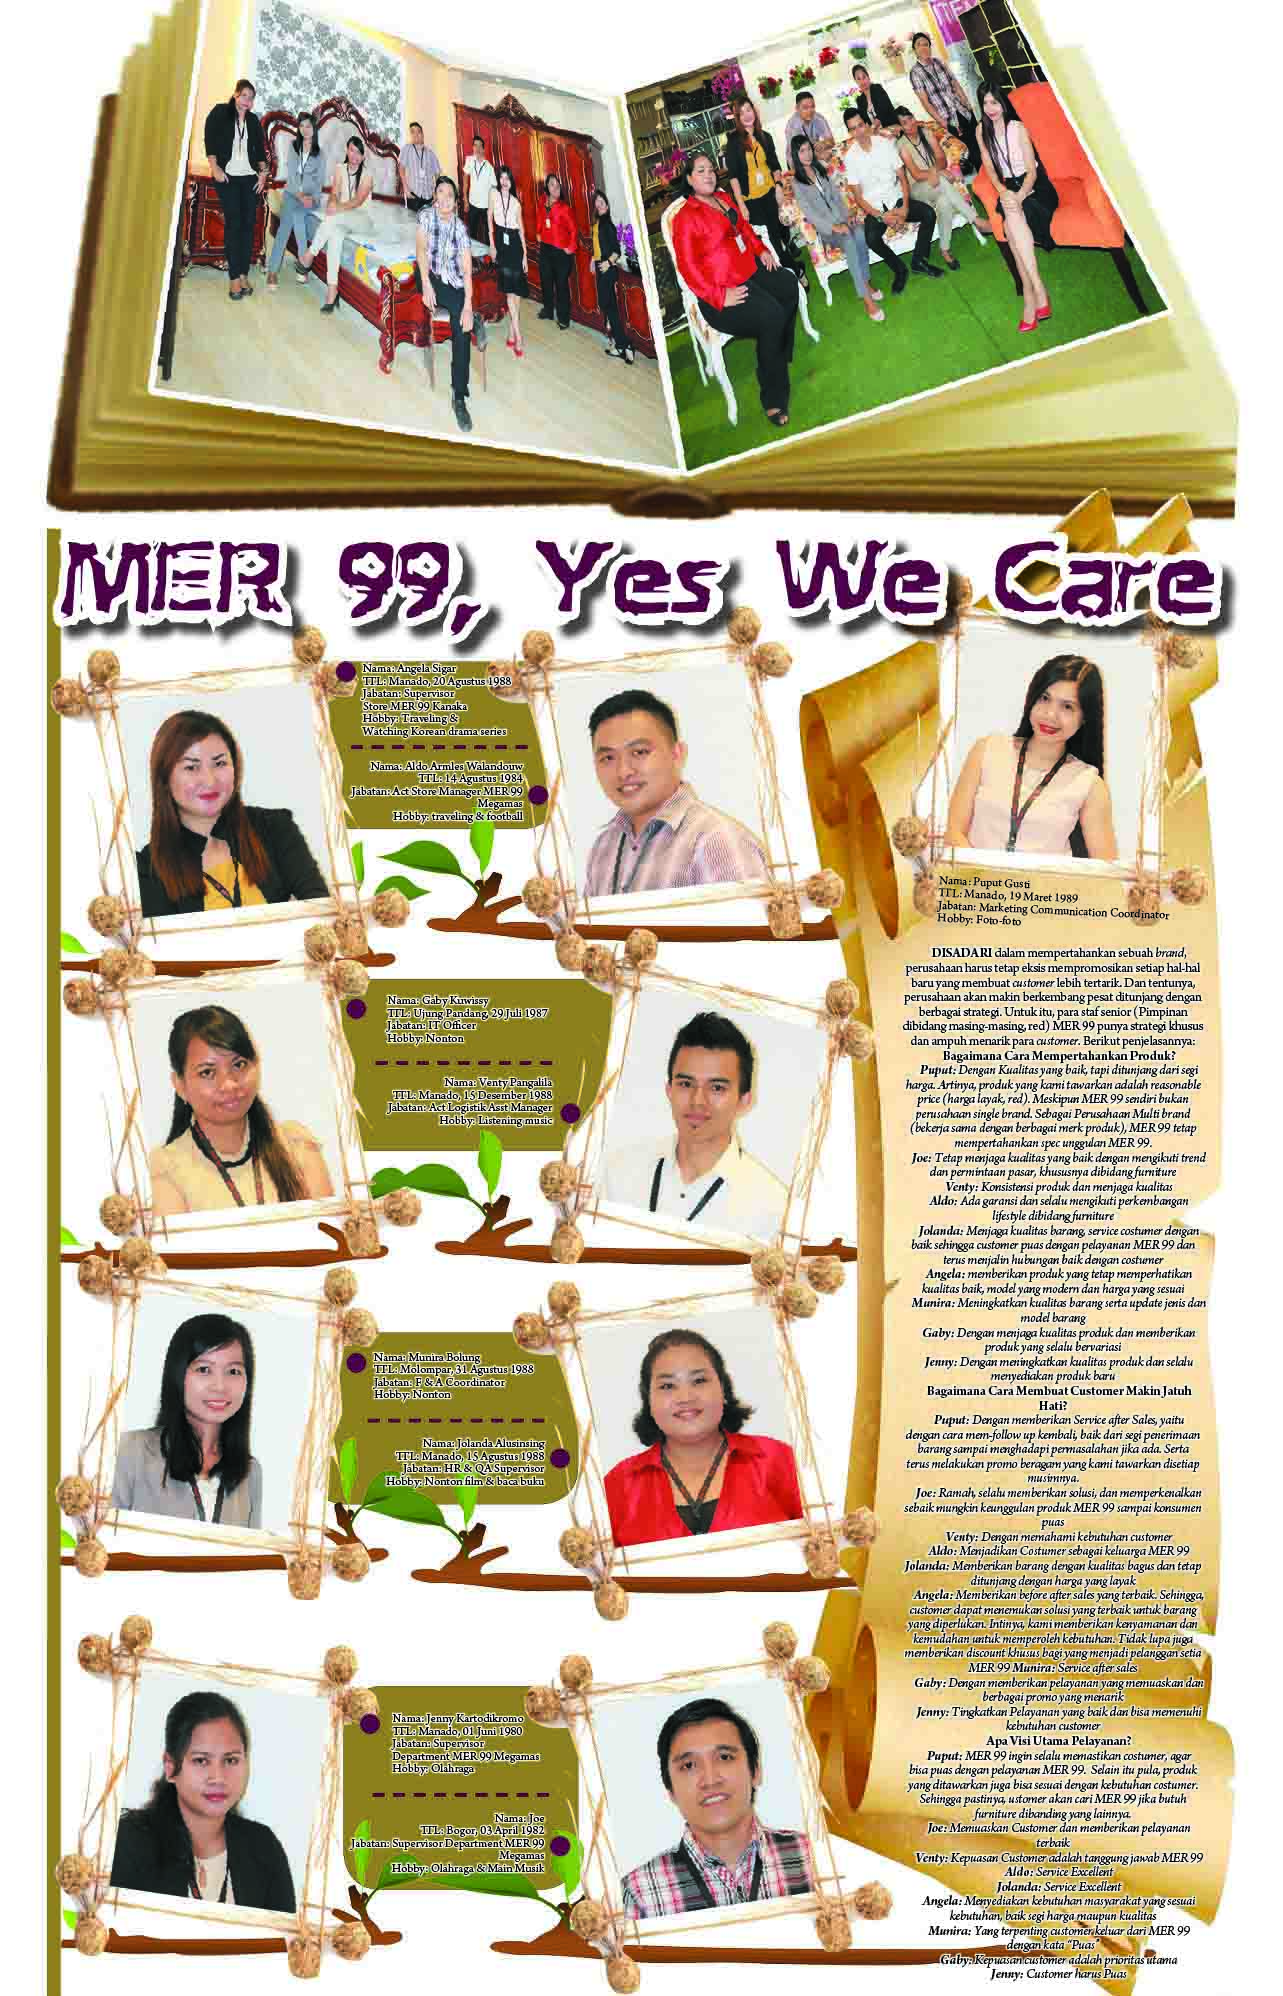 MER 99, Yes We Care!!